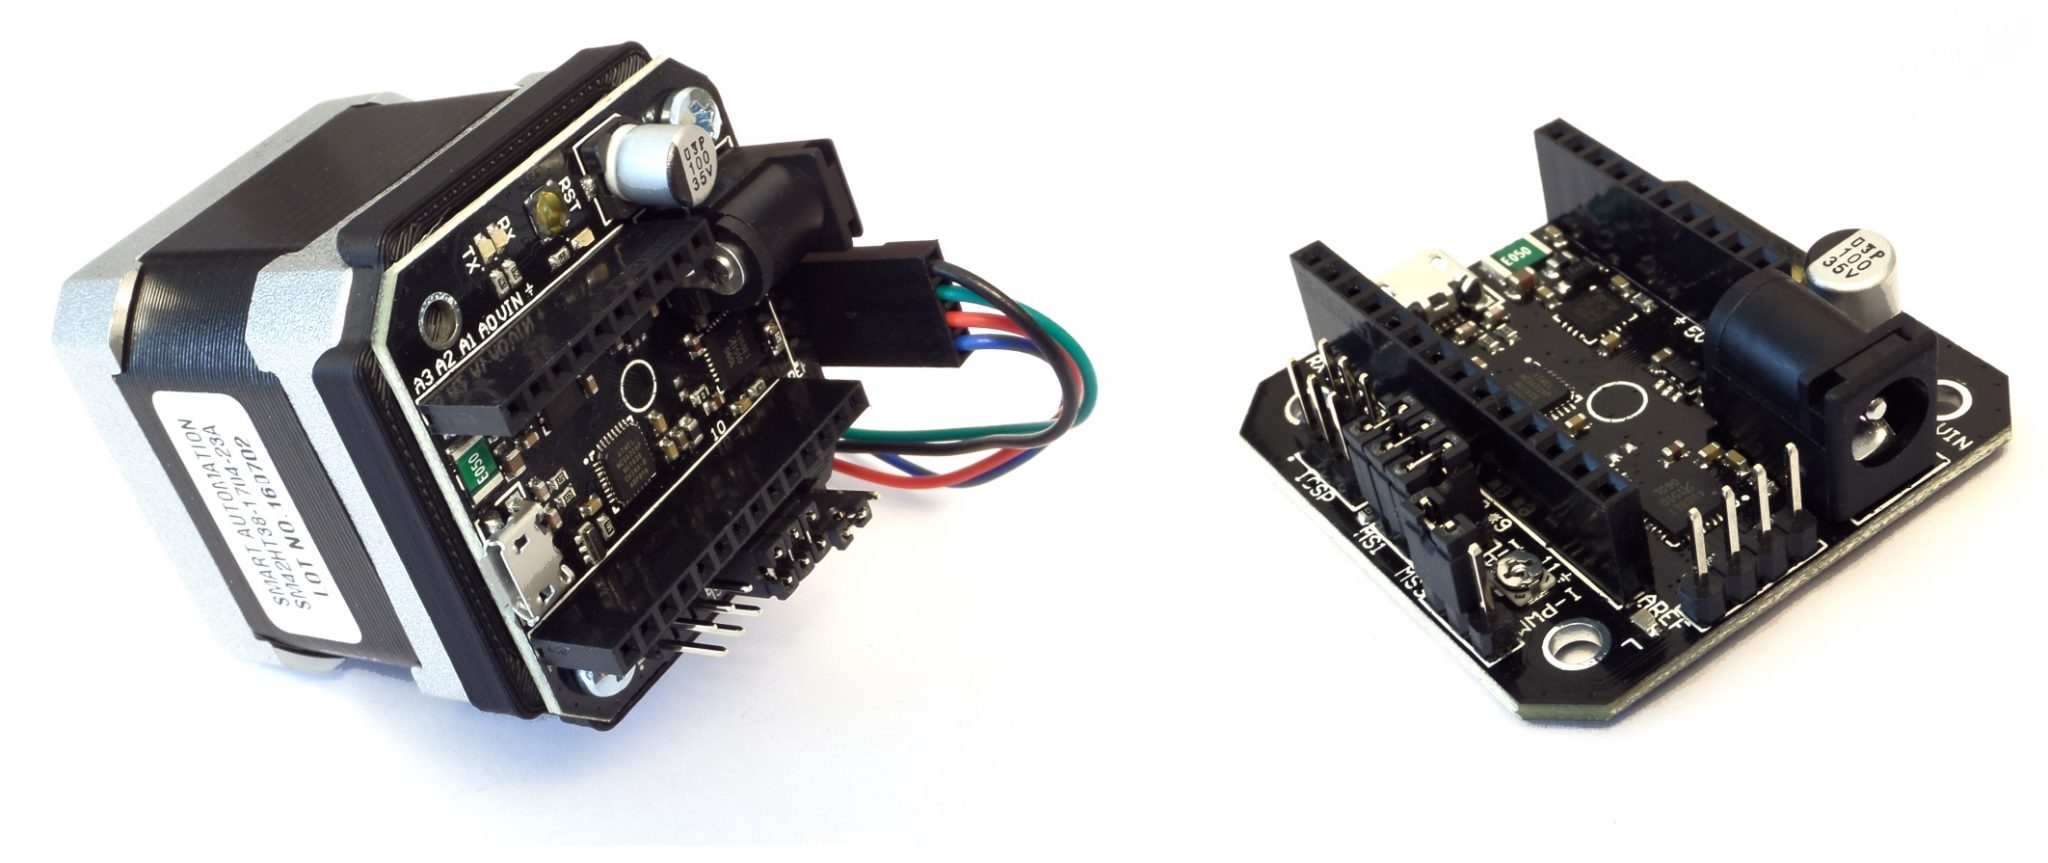 New Rev B - now with programmable torque and super easy mounting!